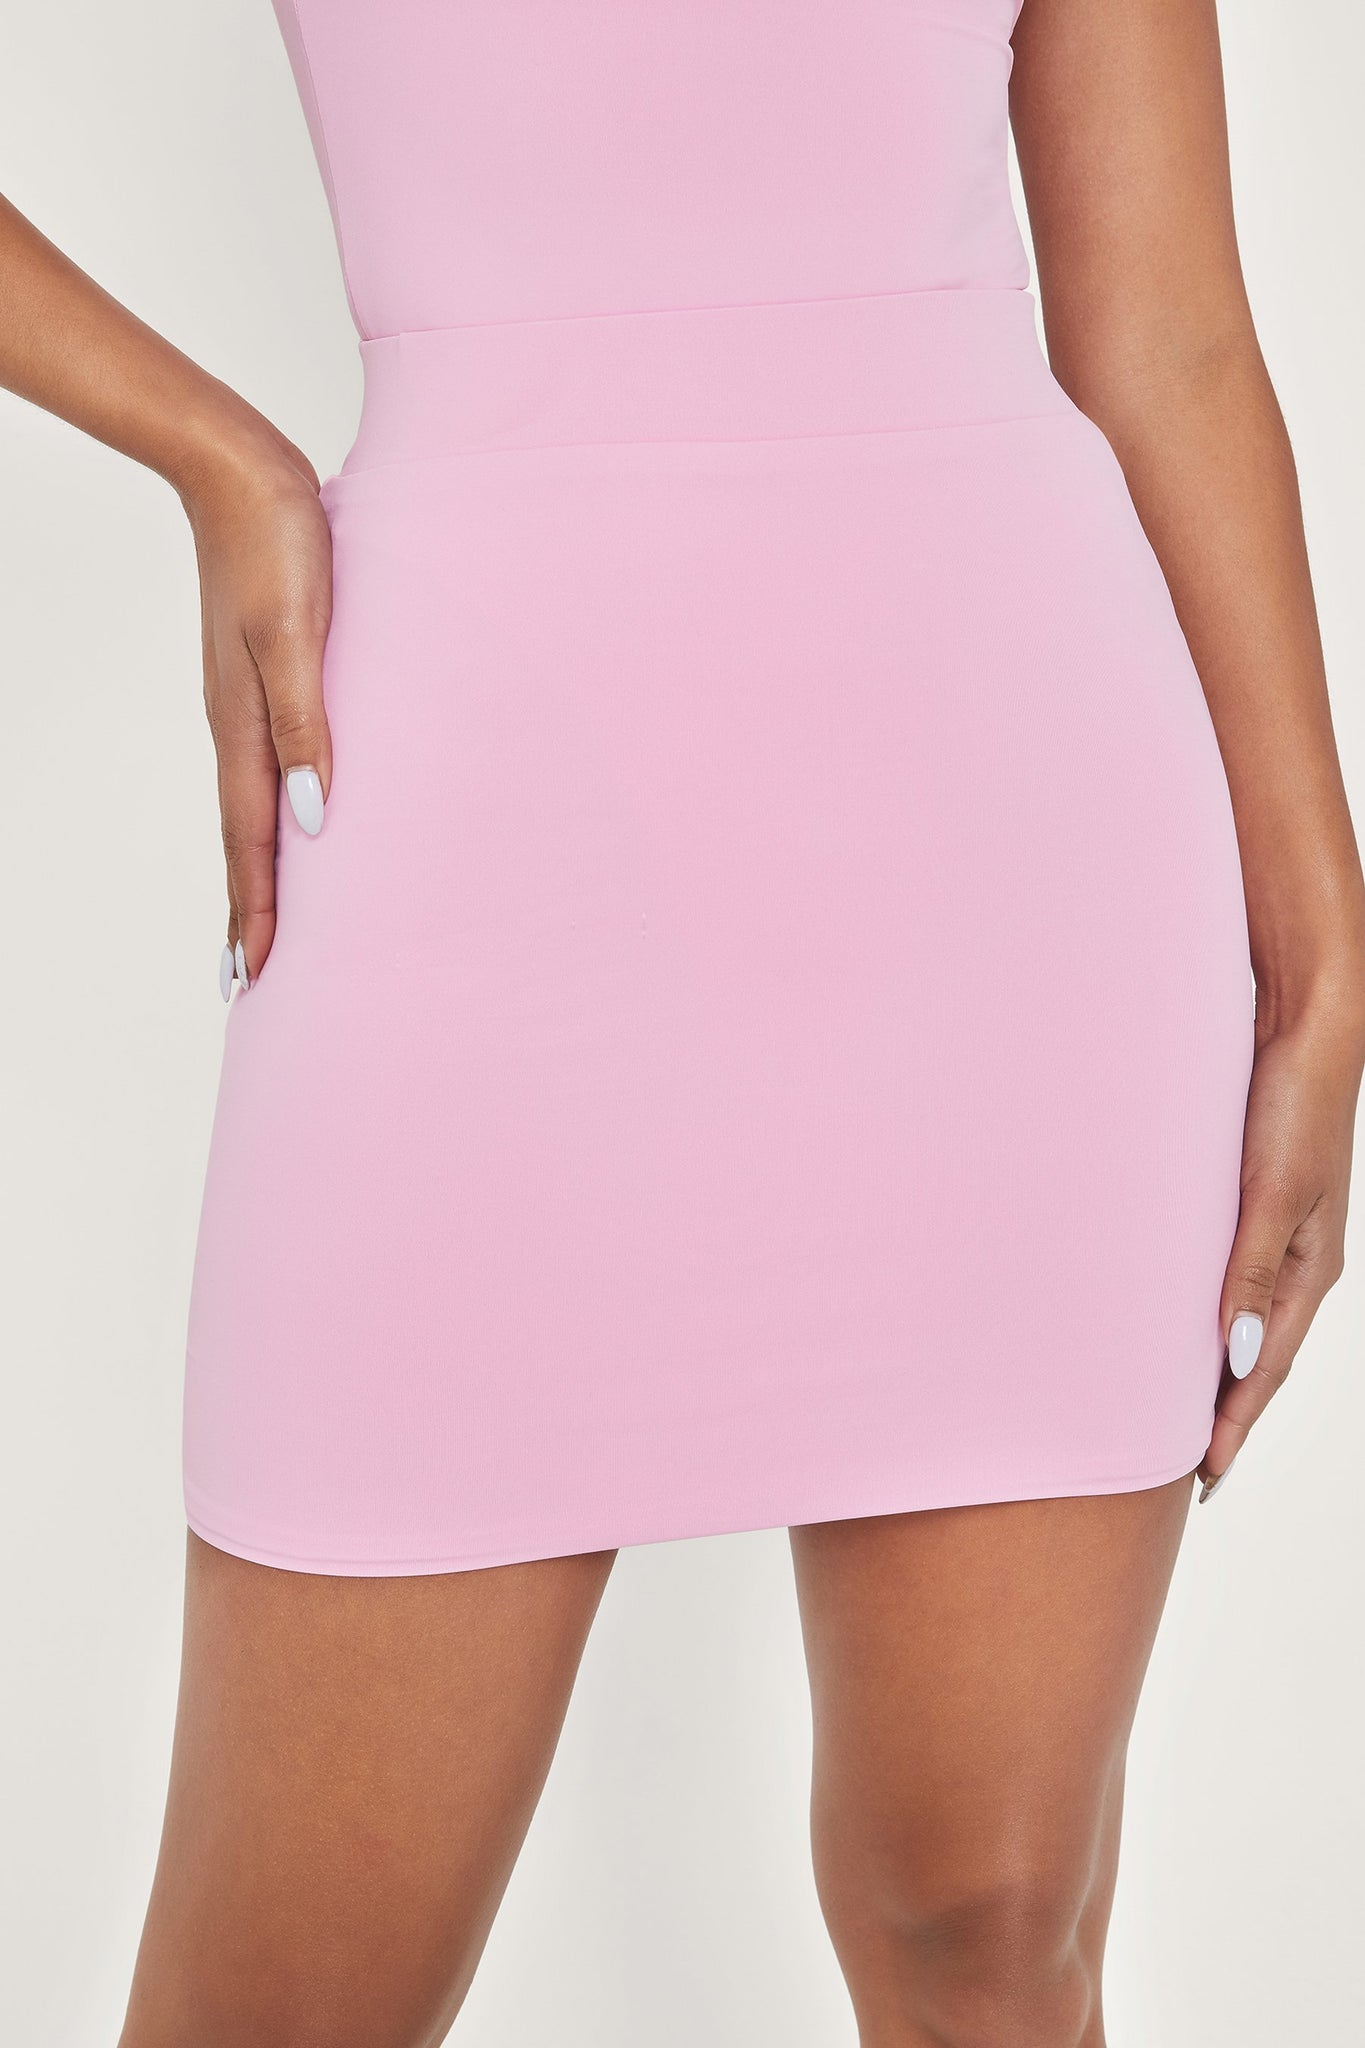 Harlow Mini Skirt - Pink - MESHKI